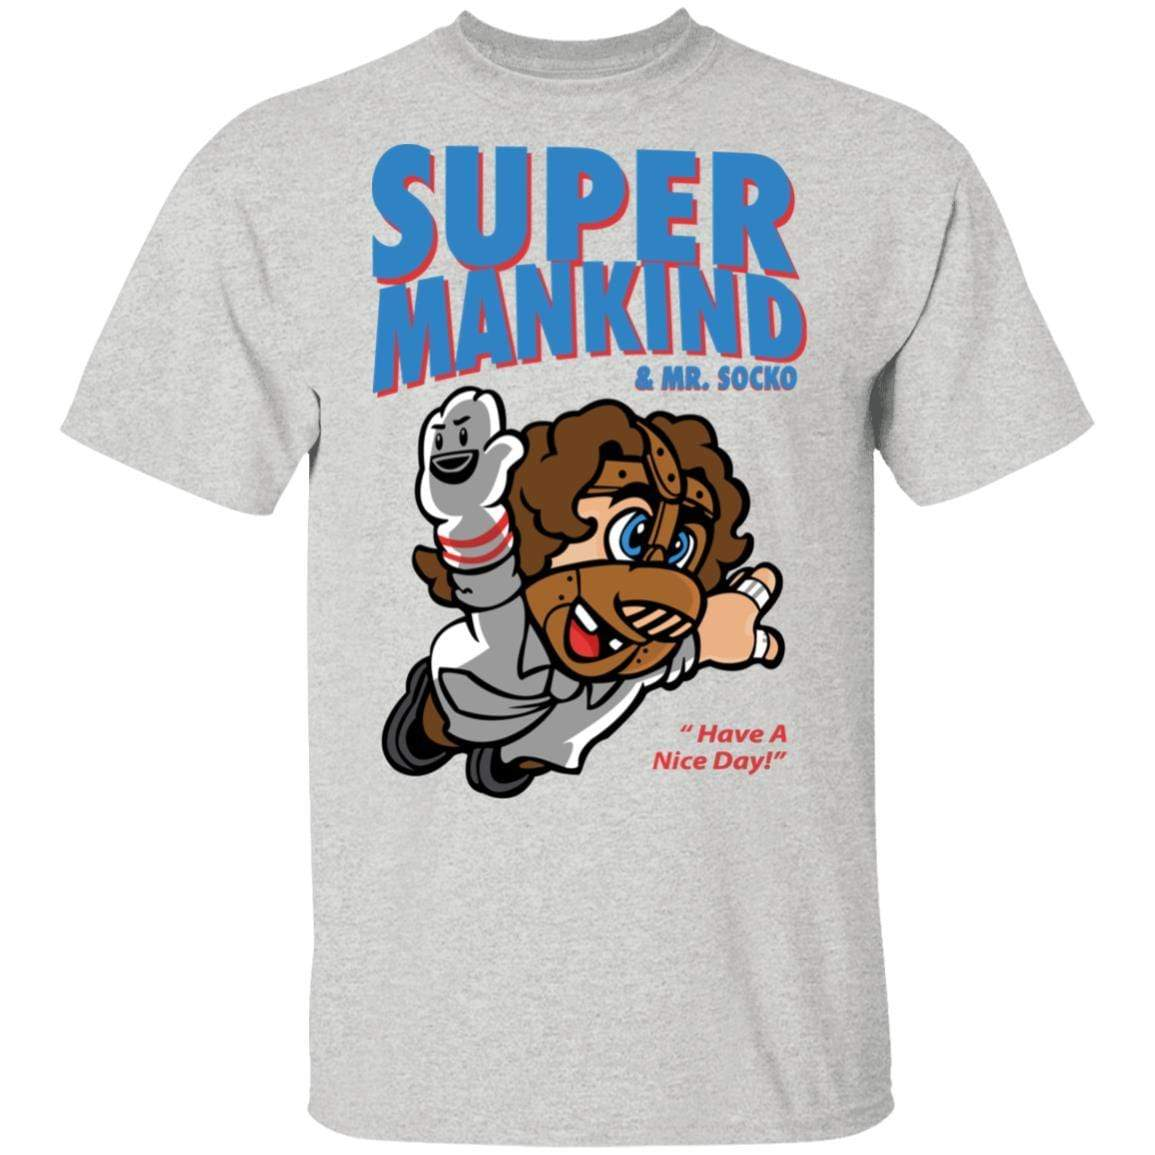 Super Mankind & Mr Socko Have A Nice Day T-Shirts, Hoodies 1049-9952-91844582-48184 - Tee Ript